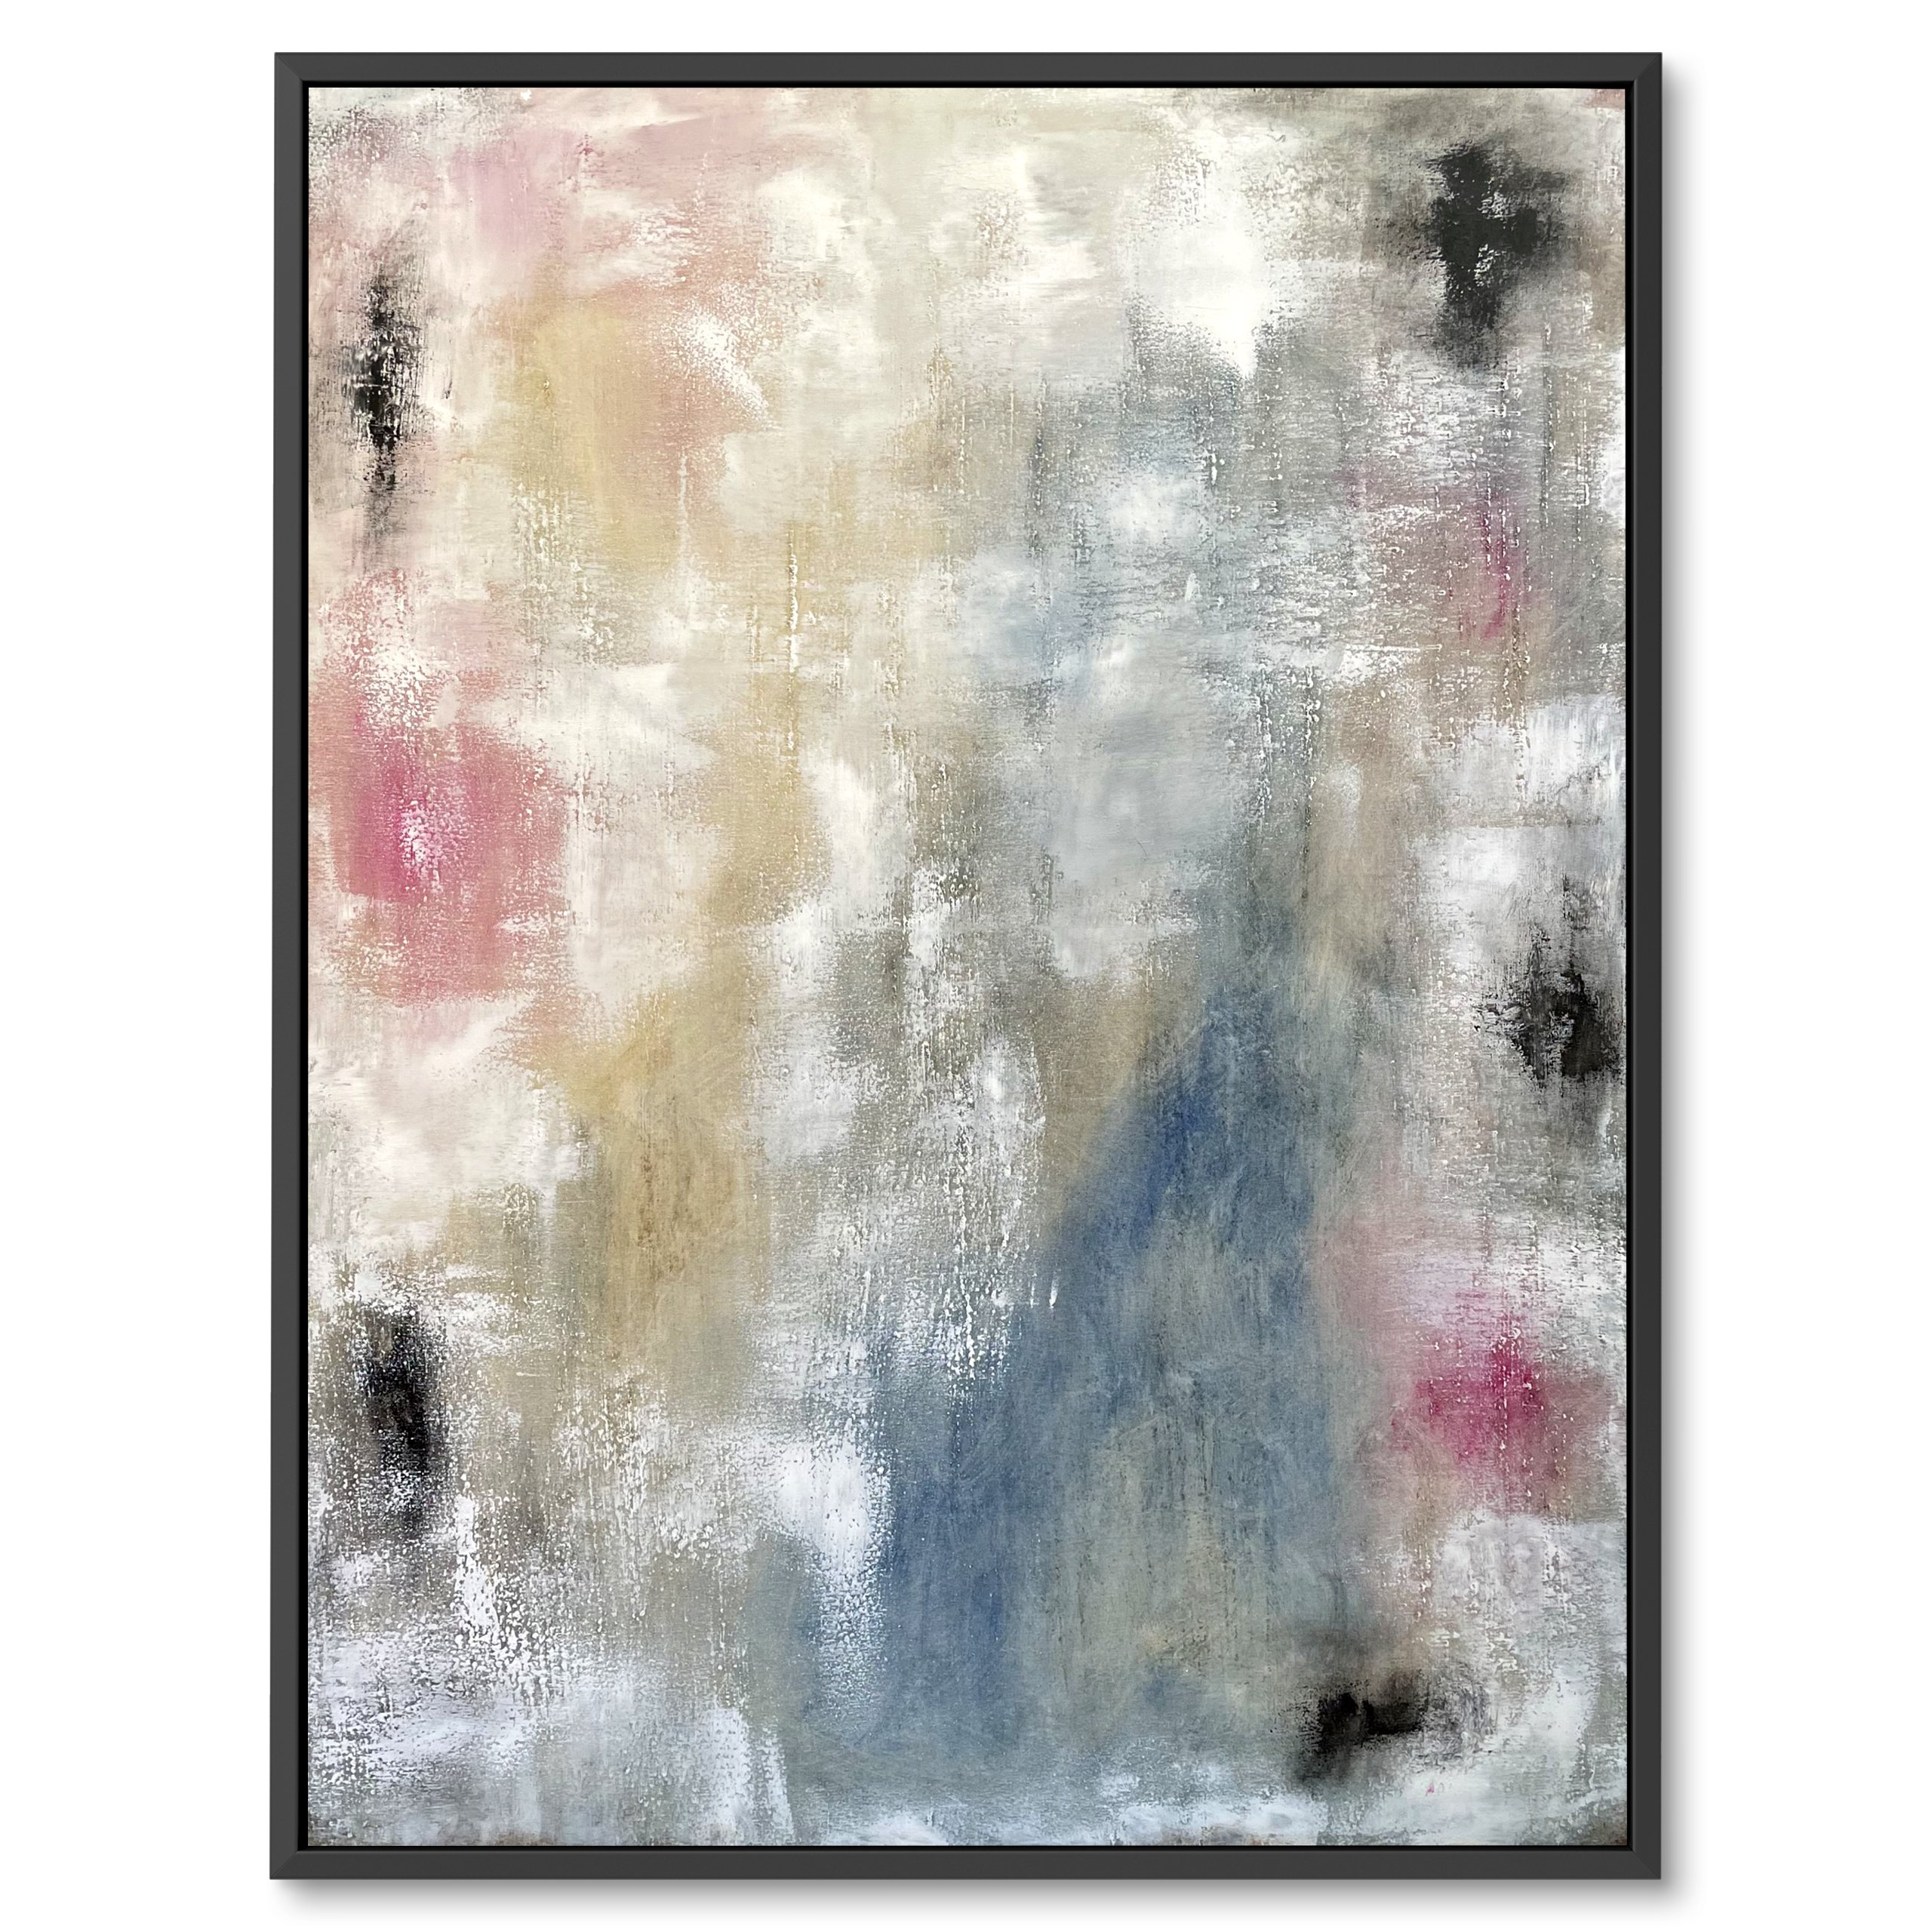 Light tones abstract art for sale. Perfect for living room decor and interior design